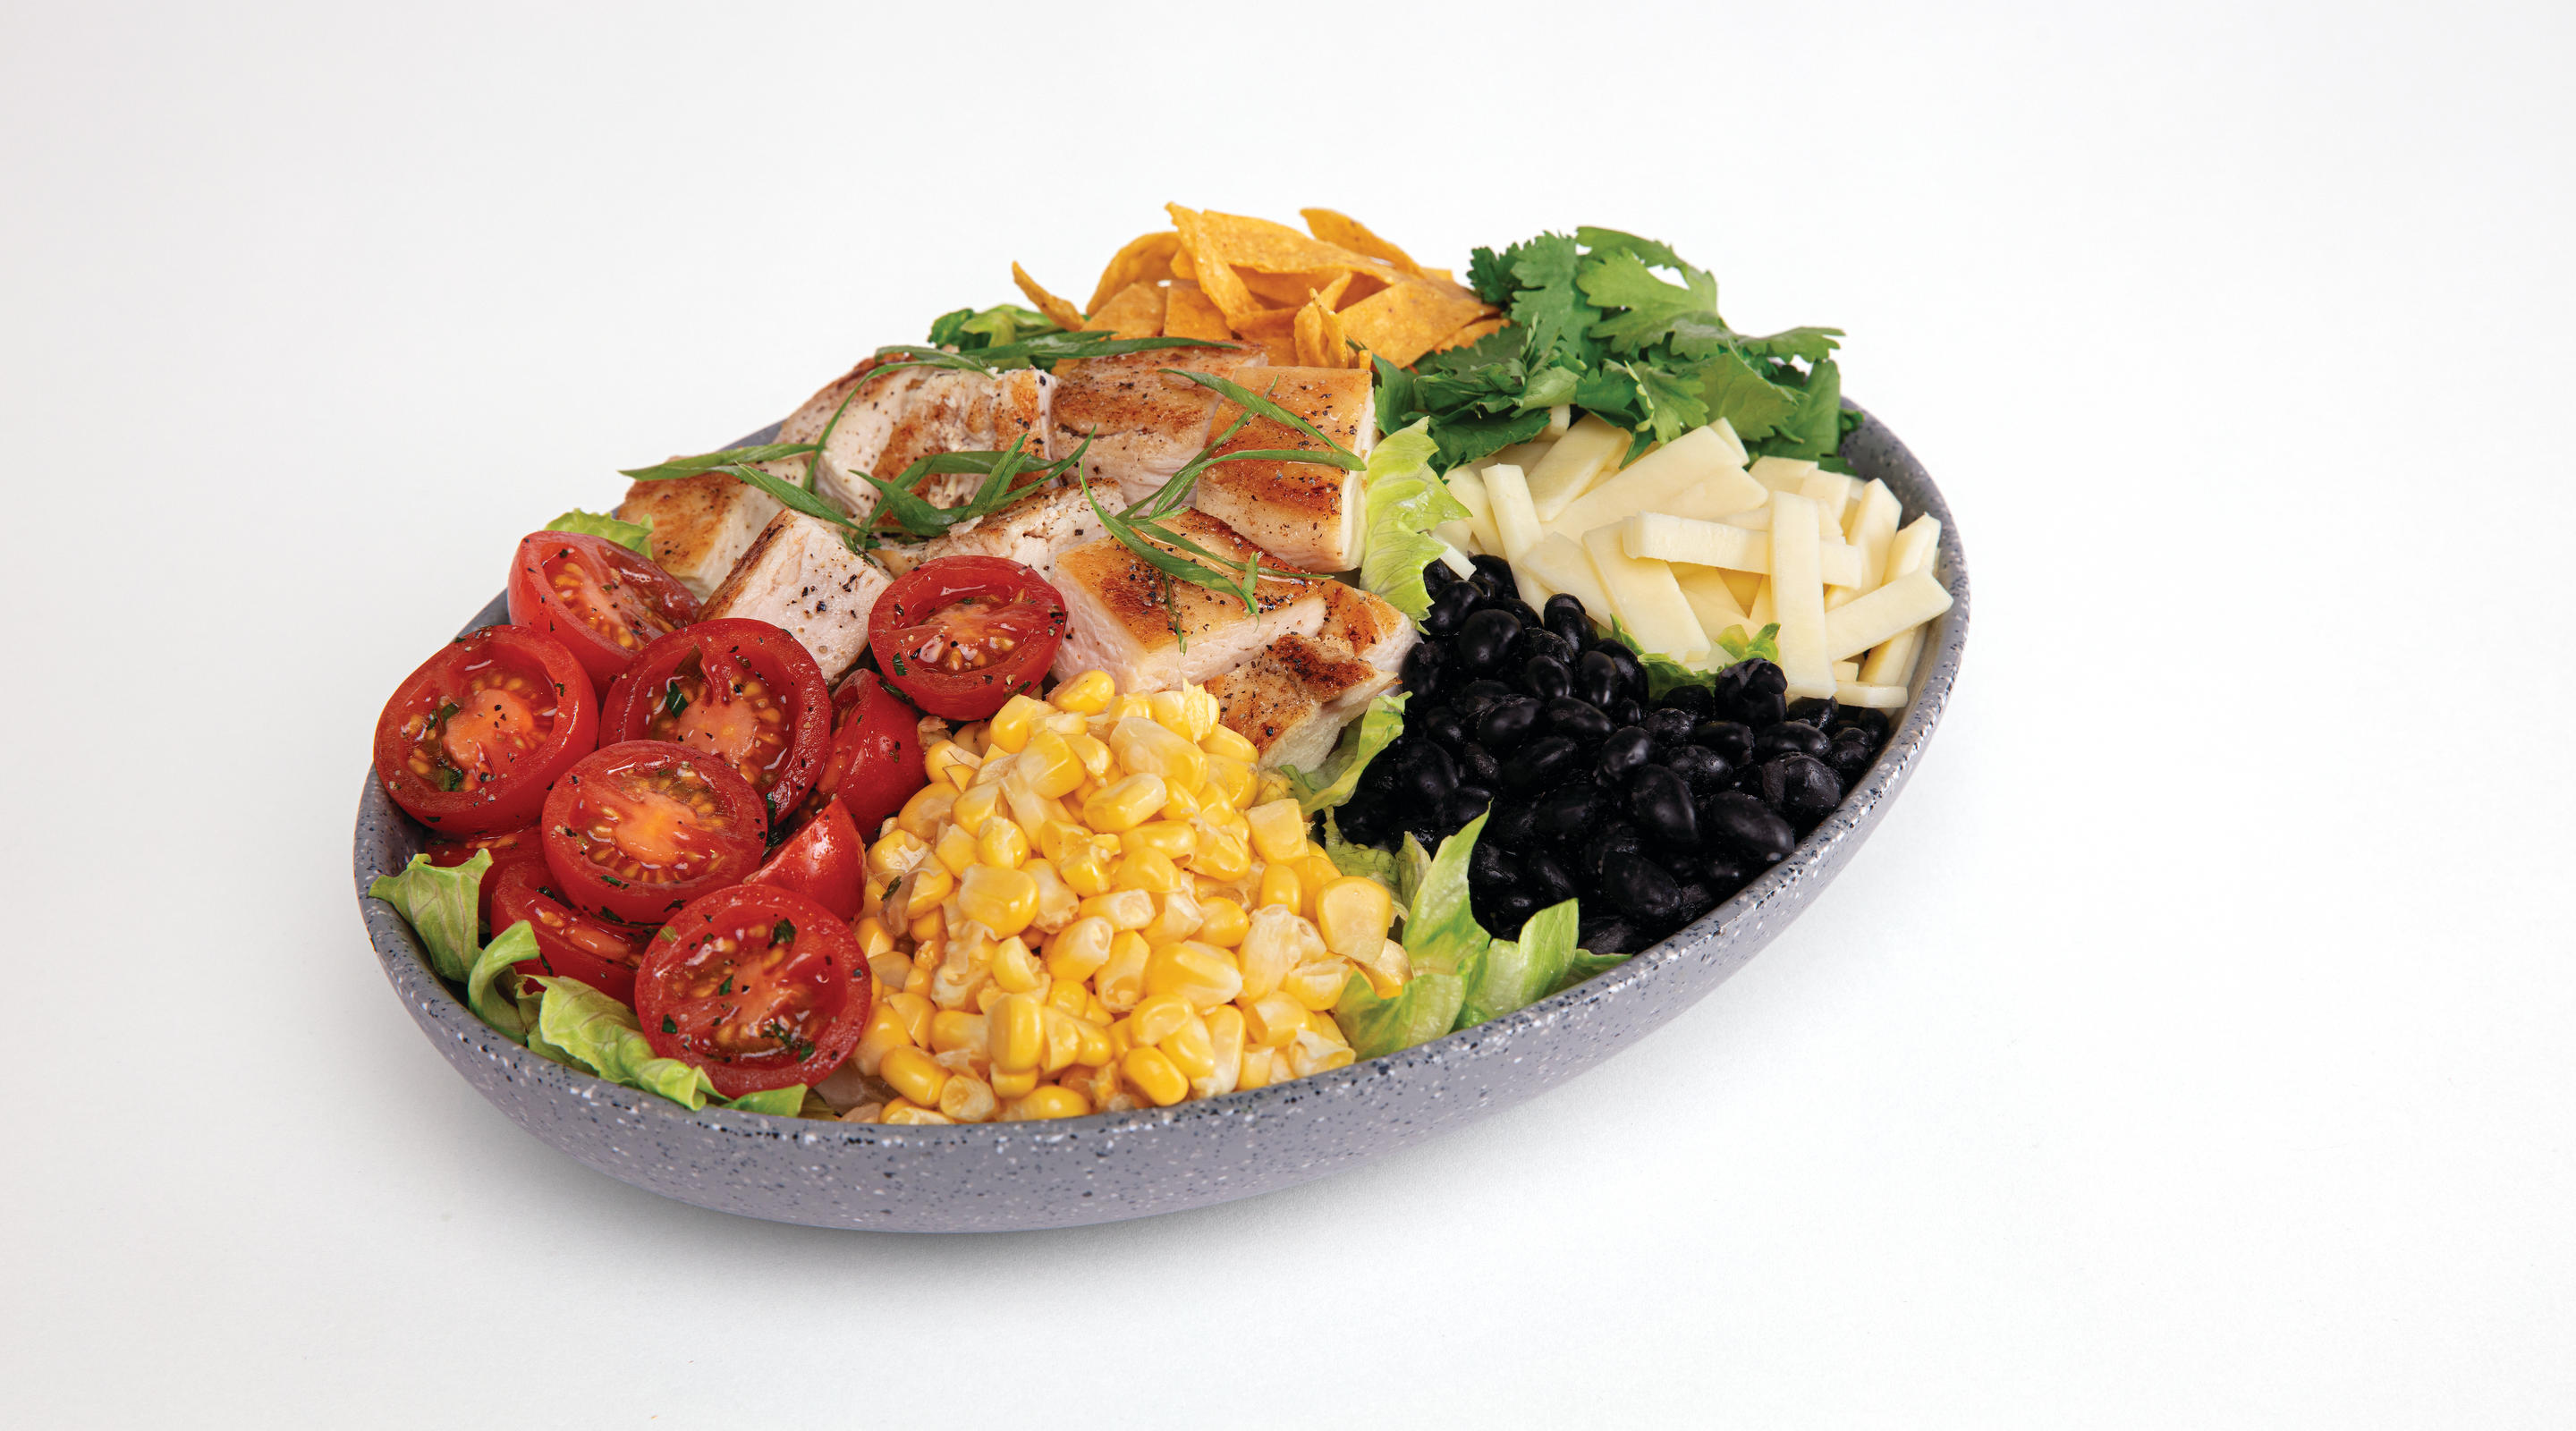 Southwest BBQ salad is one of many options at Snacks.